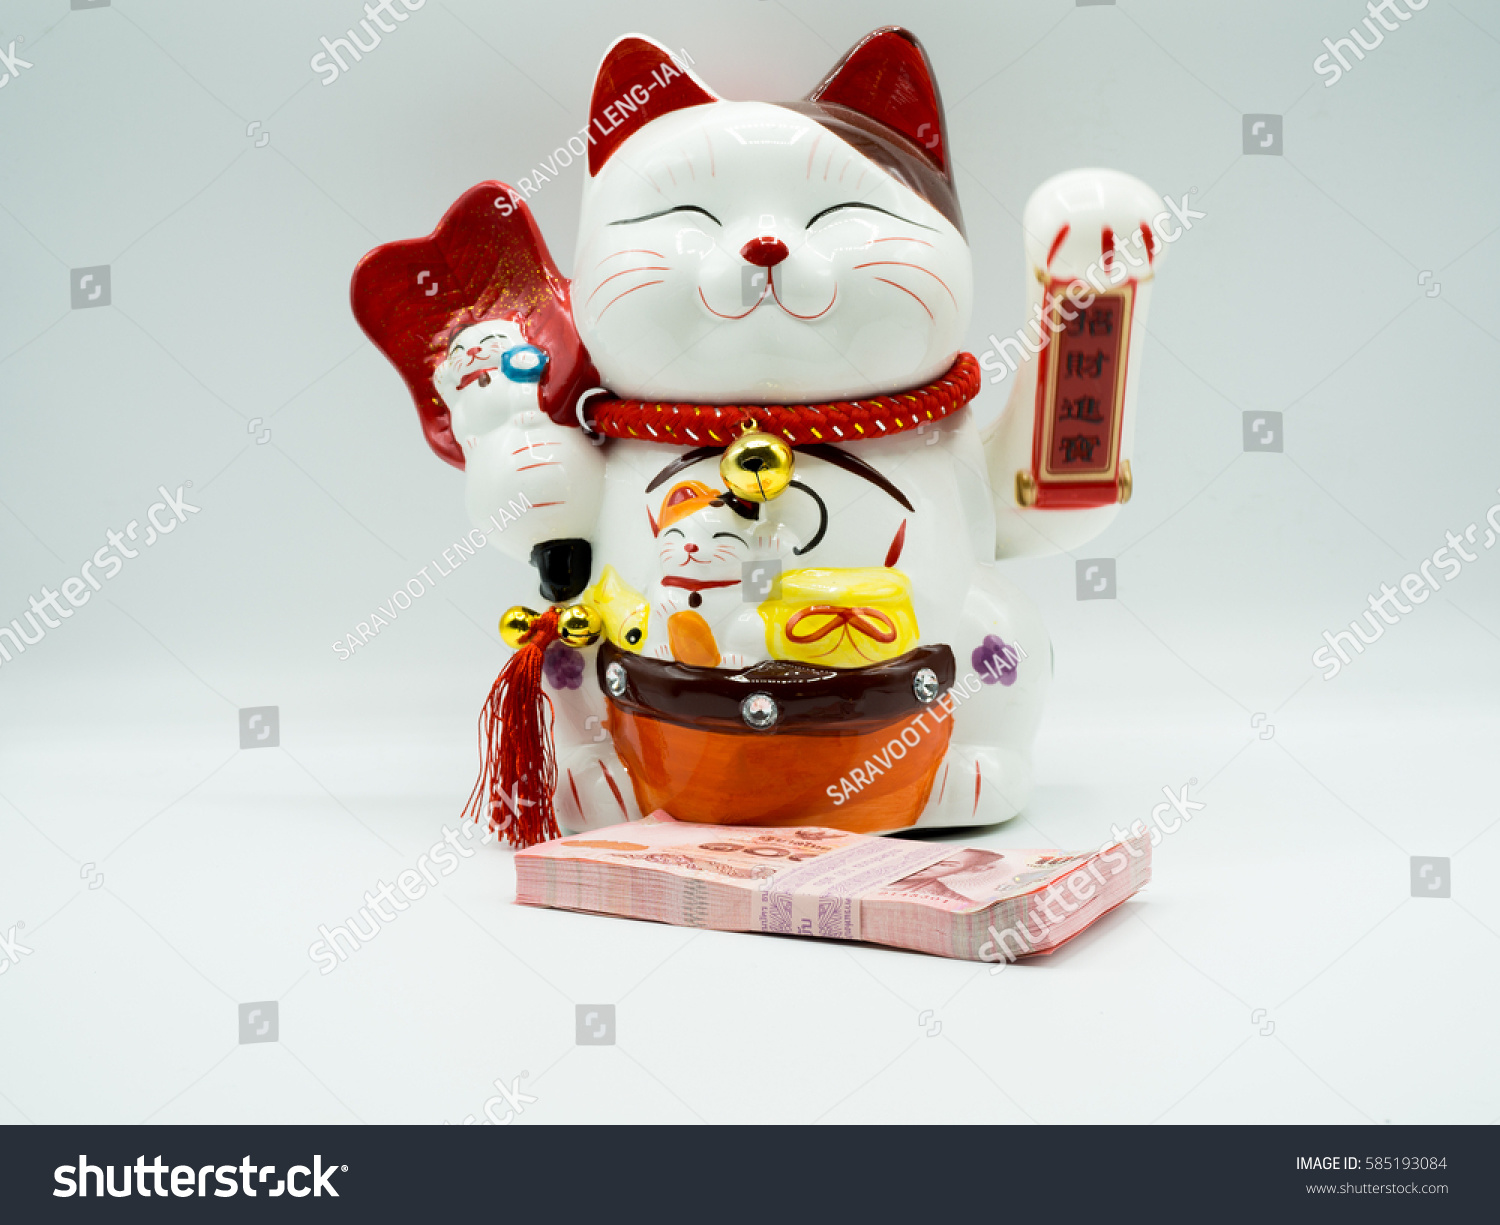 Cat beck isolated on white symbol stock photo 585193084 shutterstock cat beck isolated on white the symbol of luck for trading biocorpaavc Image collections